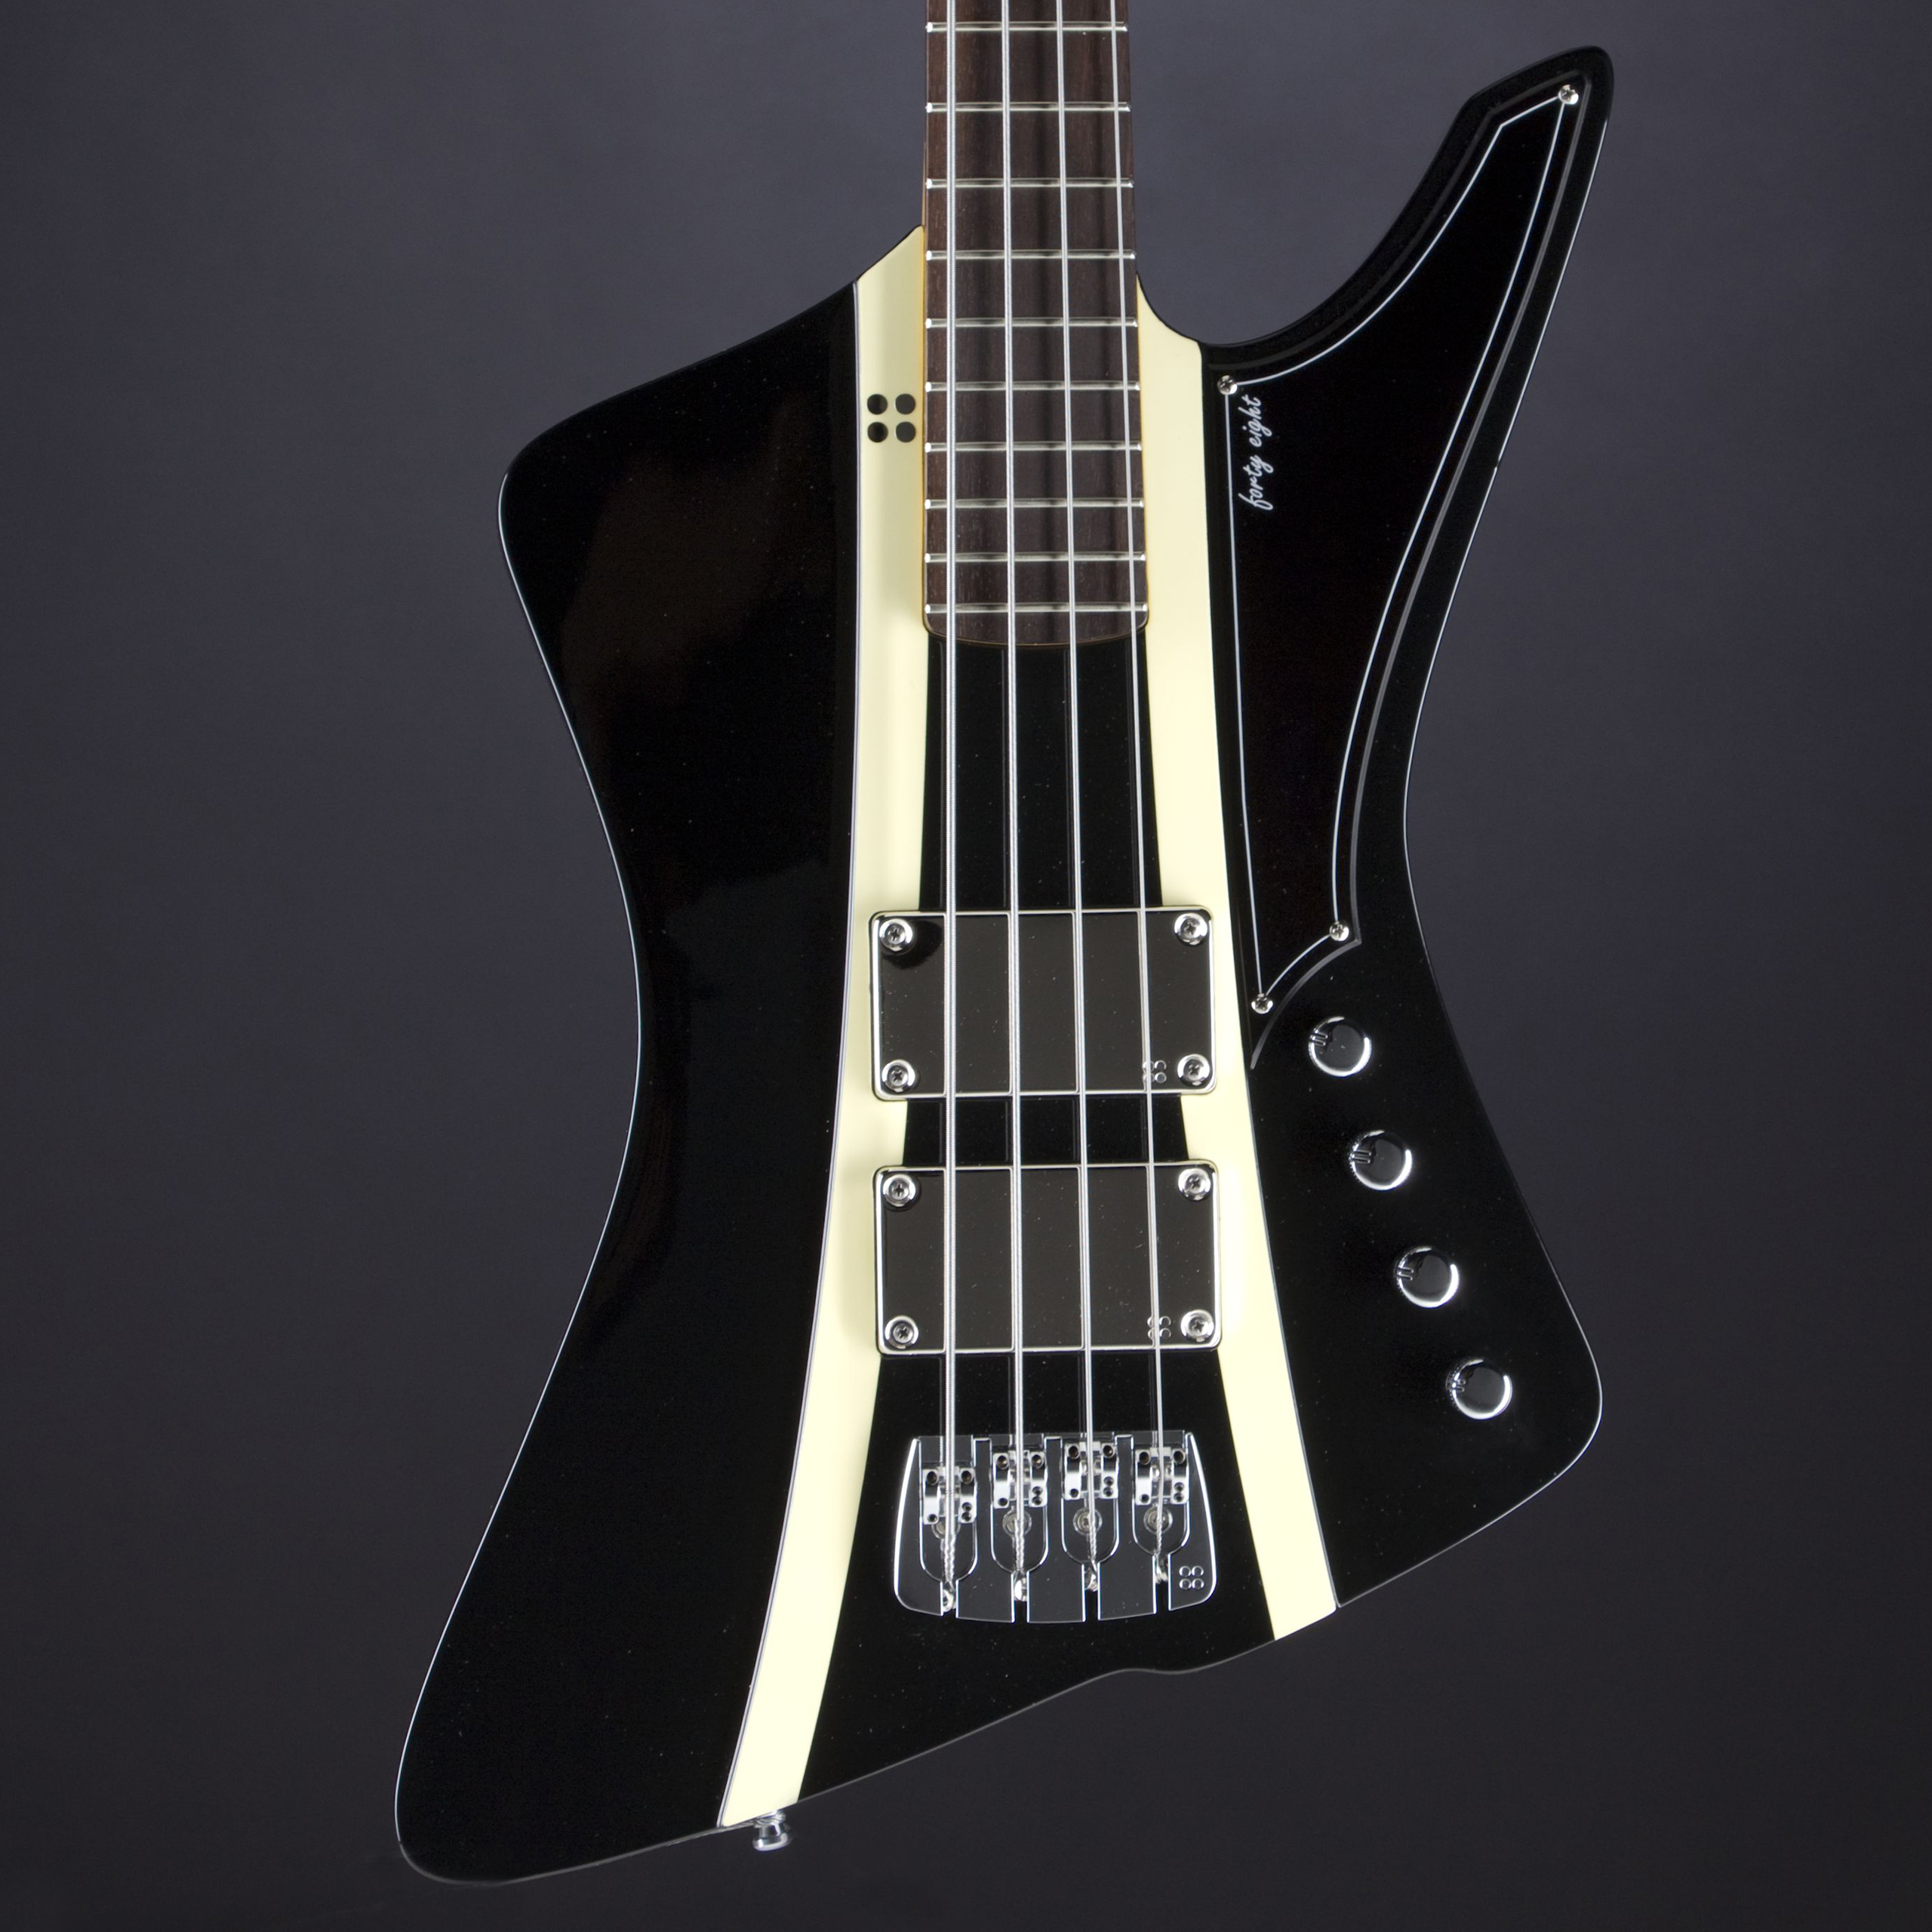 SANDBERG Forty Eight 4 RW Black Highgloss Korpus